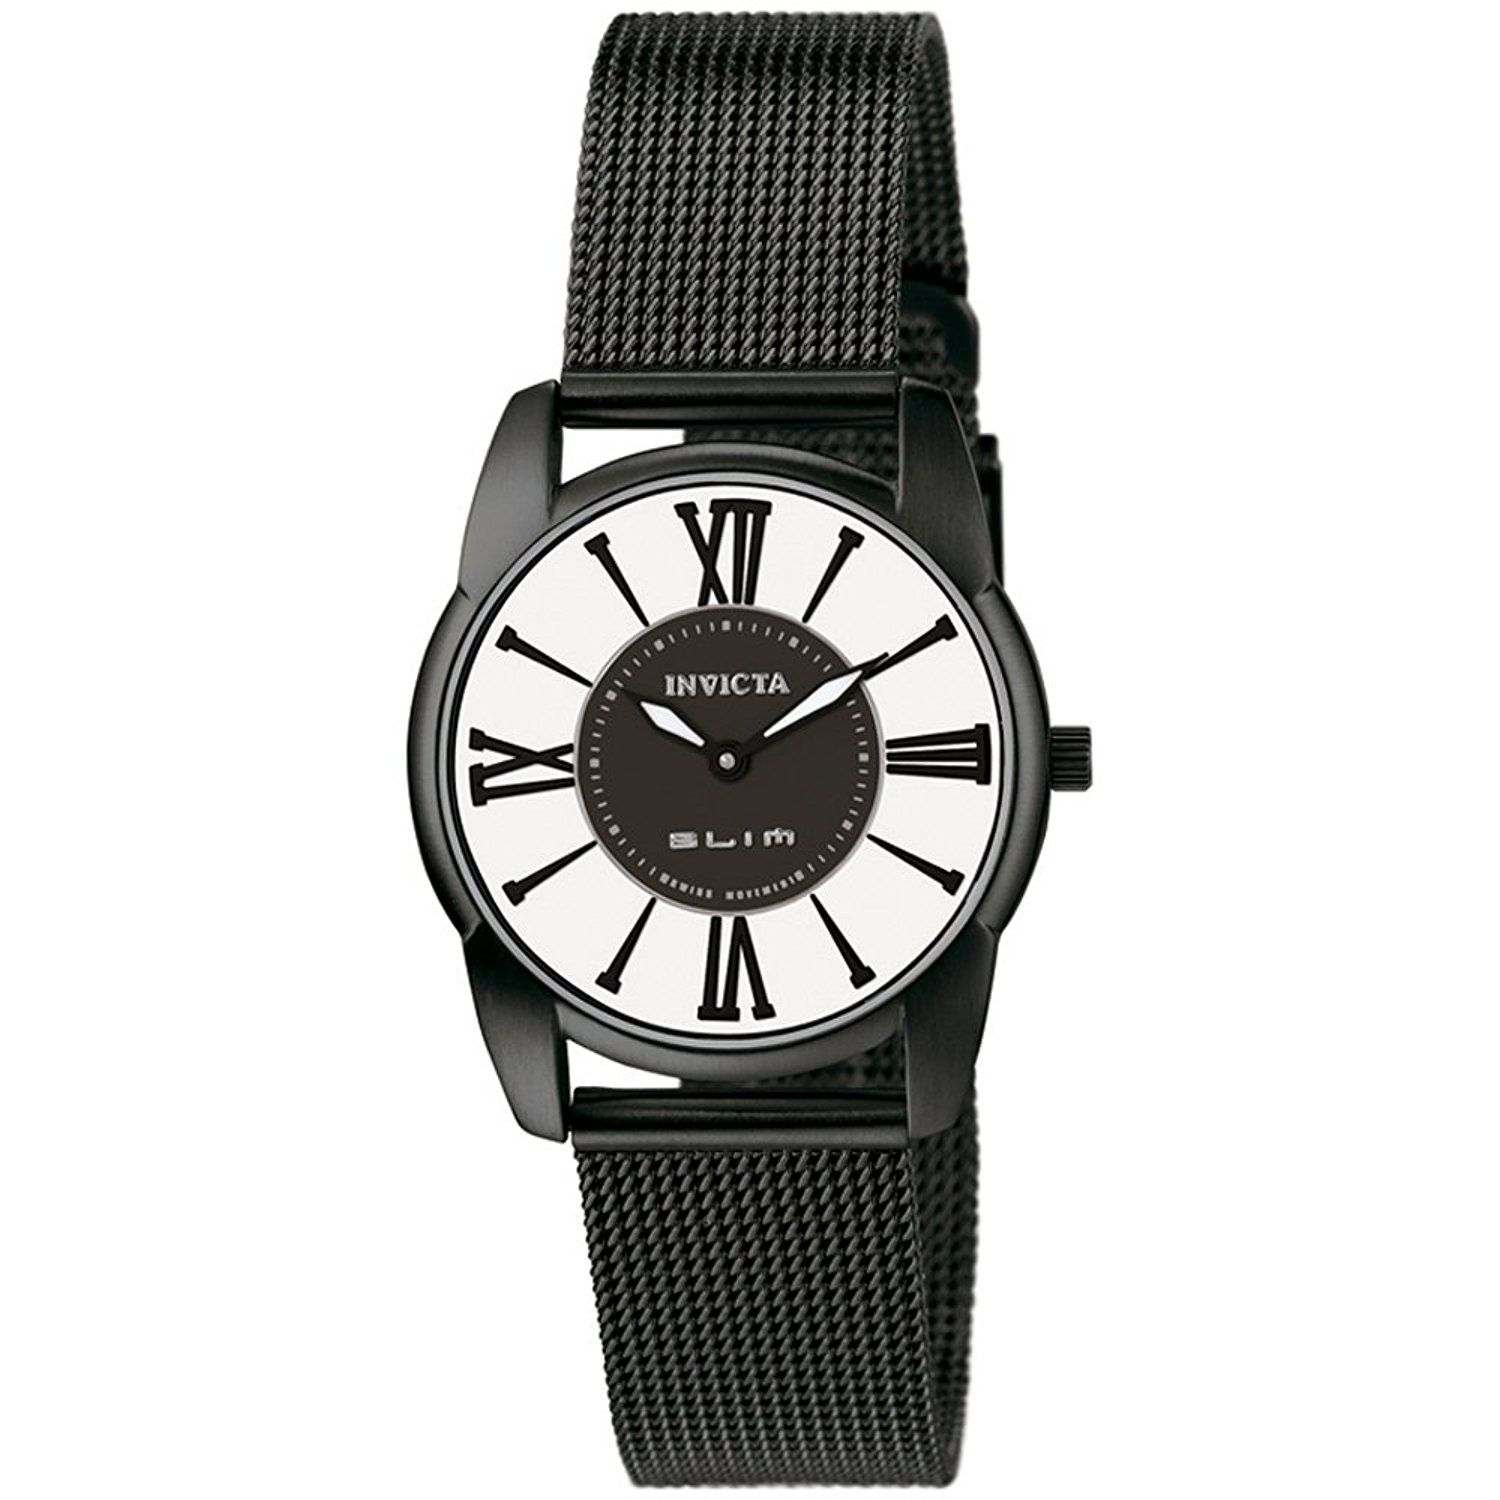 Invicta Women's 5350 Slim Collection Mesh Black Ion-Plated Stainless Steel Watch * You can get additional details at the image link.